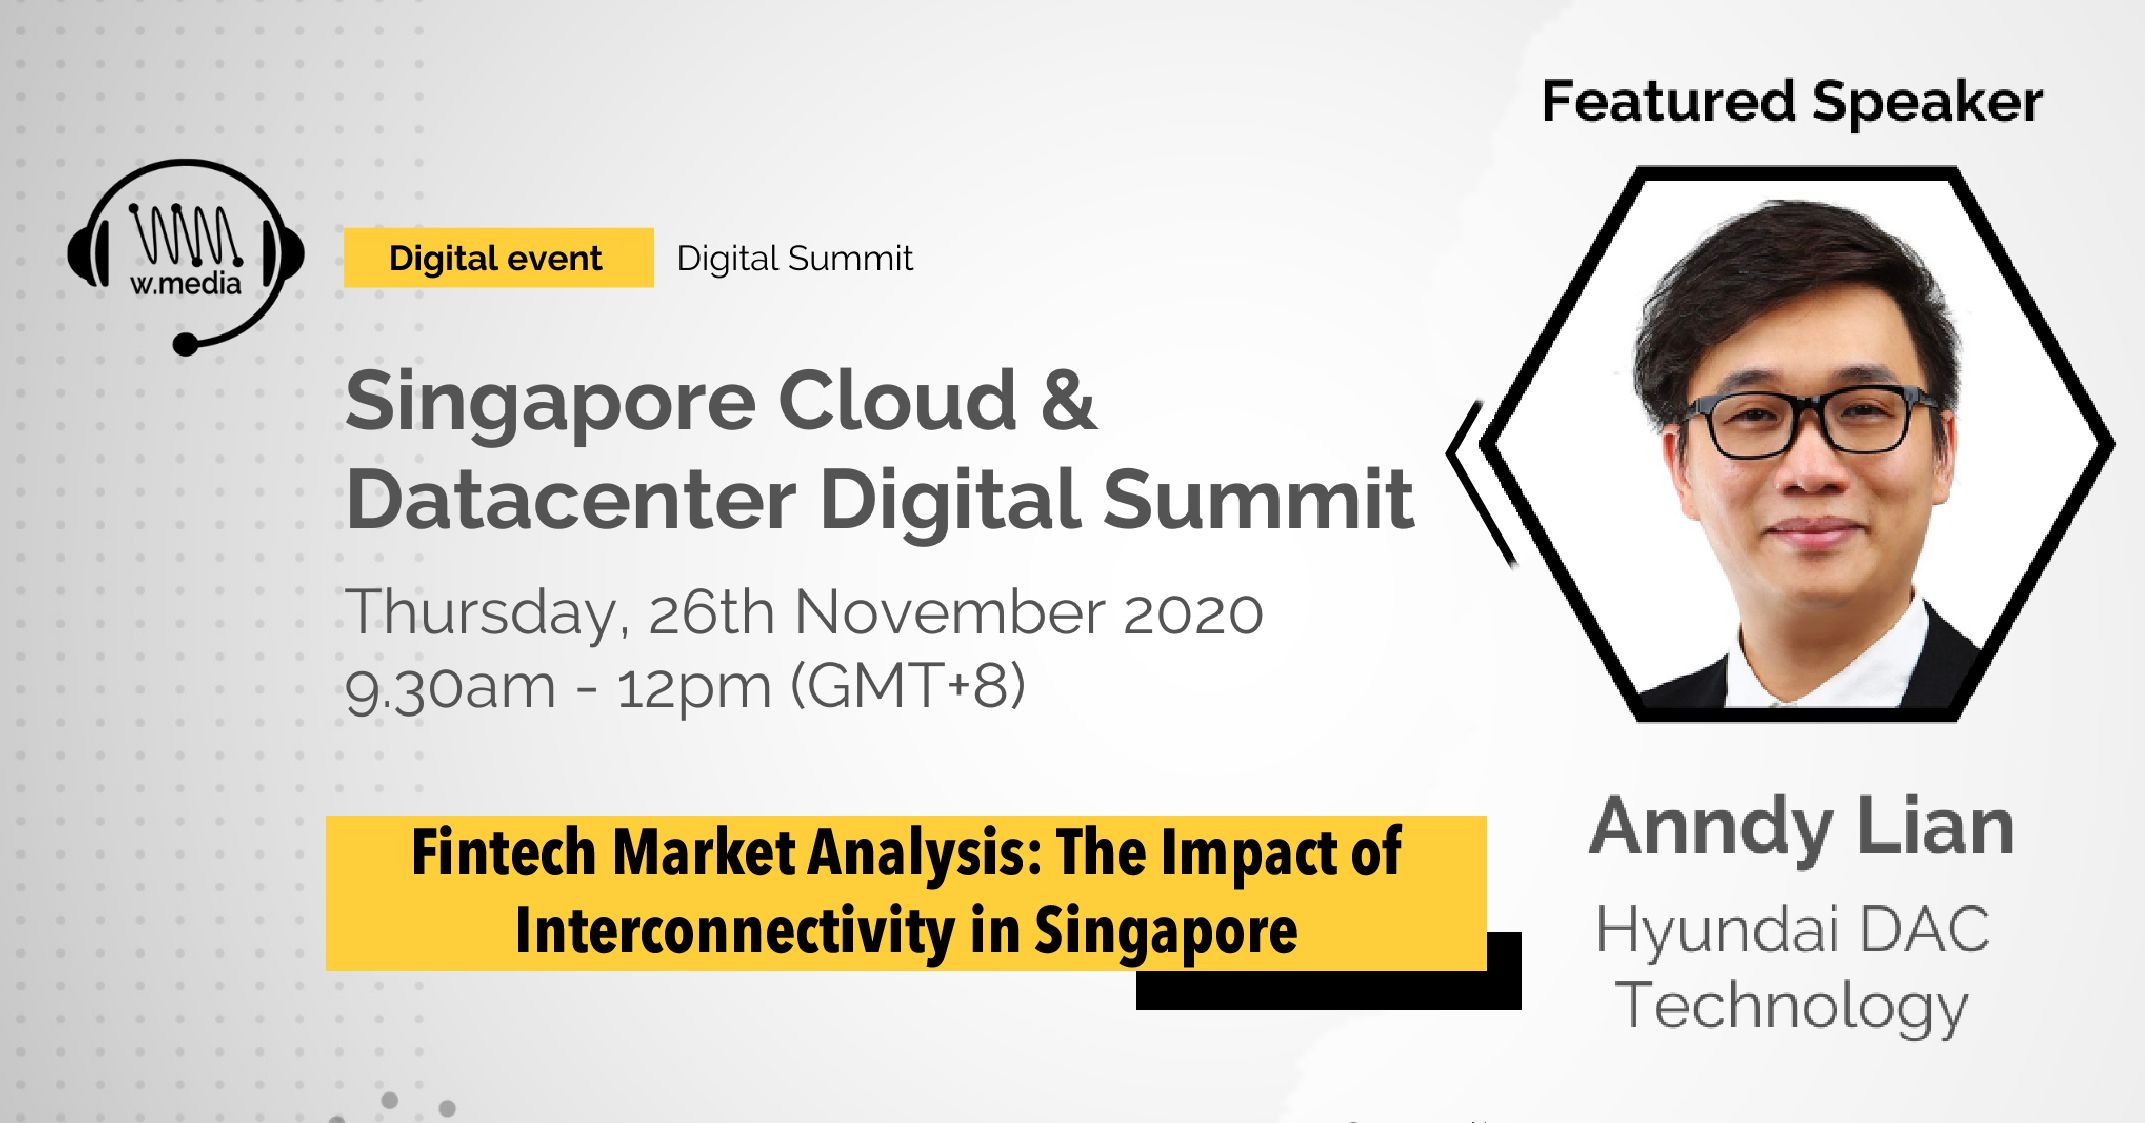 Anndy Lian Shared his views on the role of Central Bank Digital Currencies and Cryptocurrencies CBDC at Singapore Cloud Datacenter Digital Summit